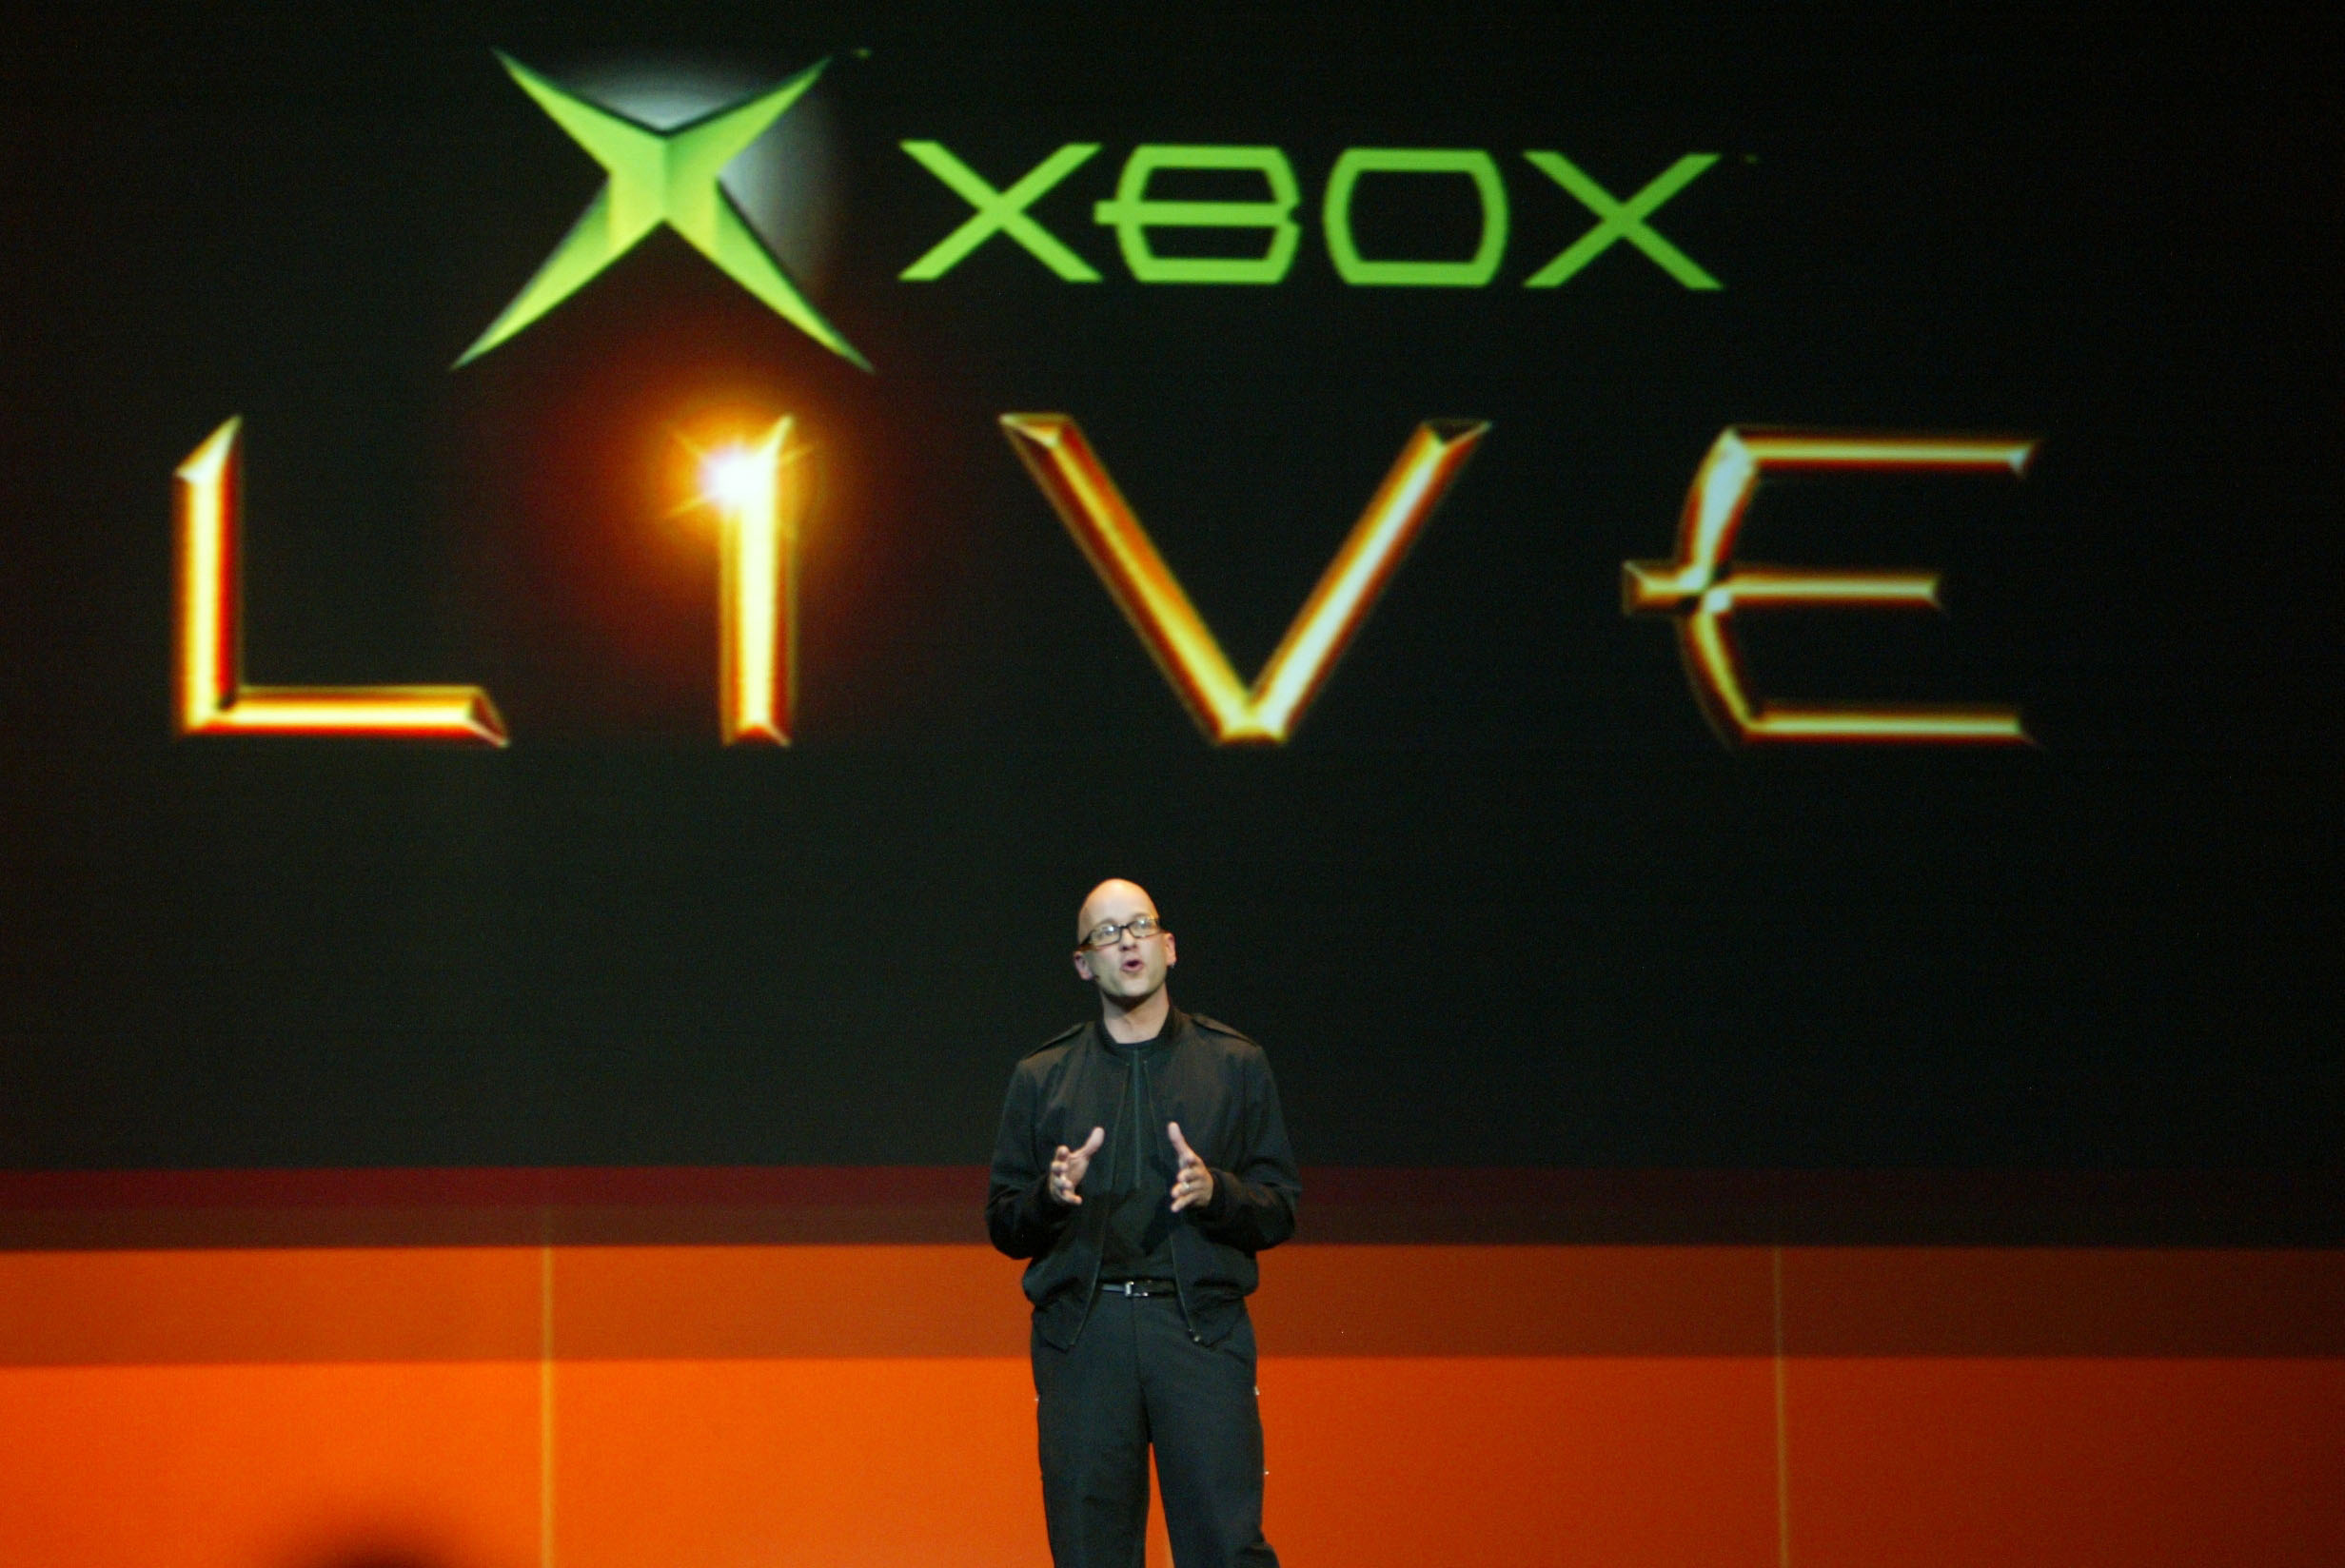 Microsoft Xbox chief XNA architect J Allard announces plans for content for Xbox Live, the online gaming component of Microsoft's Xbox, during a press preview of Microsoft Xbox gaming system in Los Angeles, May 10, 2004. The Electronic Entertainment Expo, a trade show for the video game industry, opens in Los Angeles May 12, 2004. Many companies will be introducing new hardware and software titles for fans of video games. REUTERS/Fred Prouser  FSP/DL